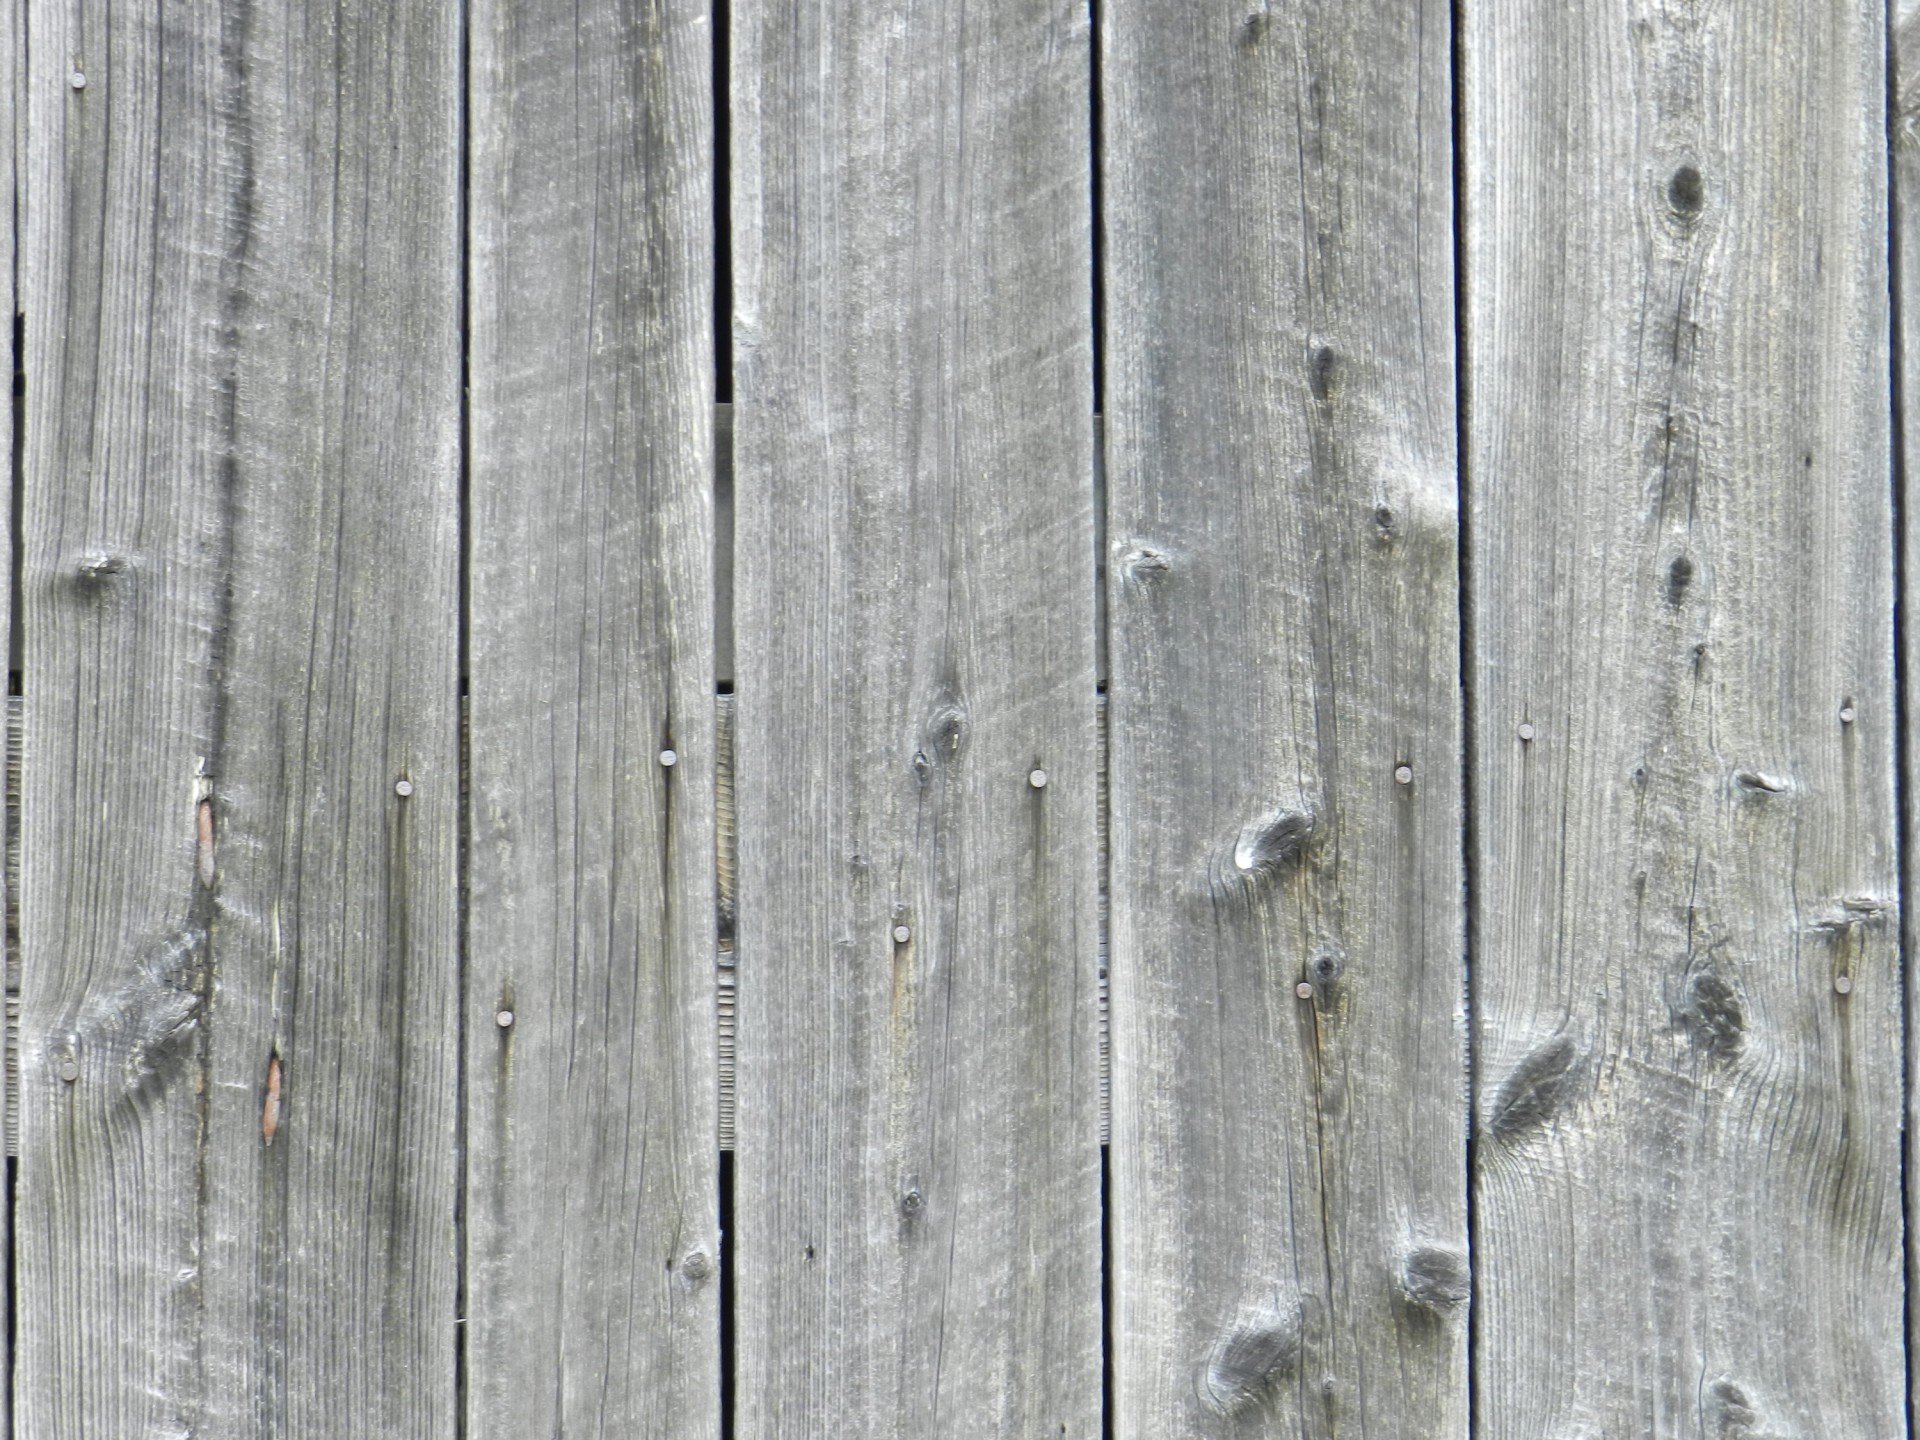 barn wood 8 stock photo public domain pictures barn wood 1920x1440